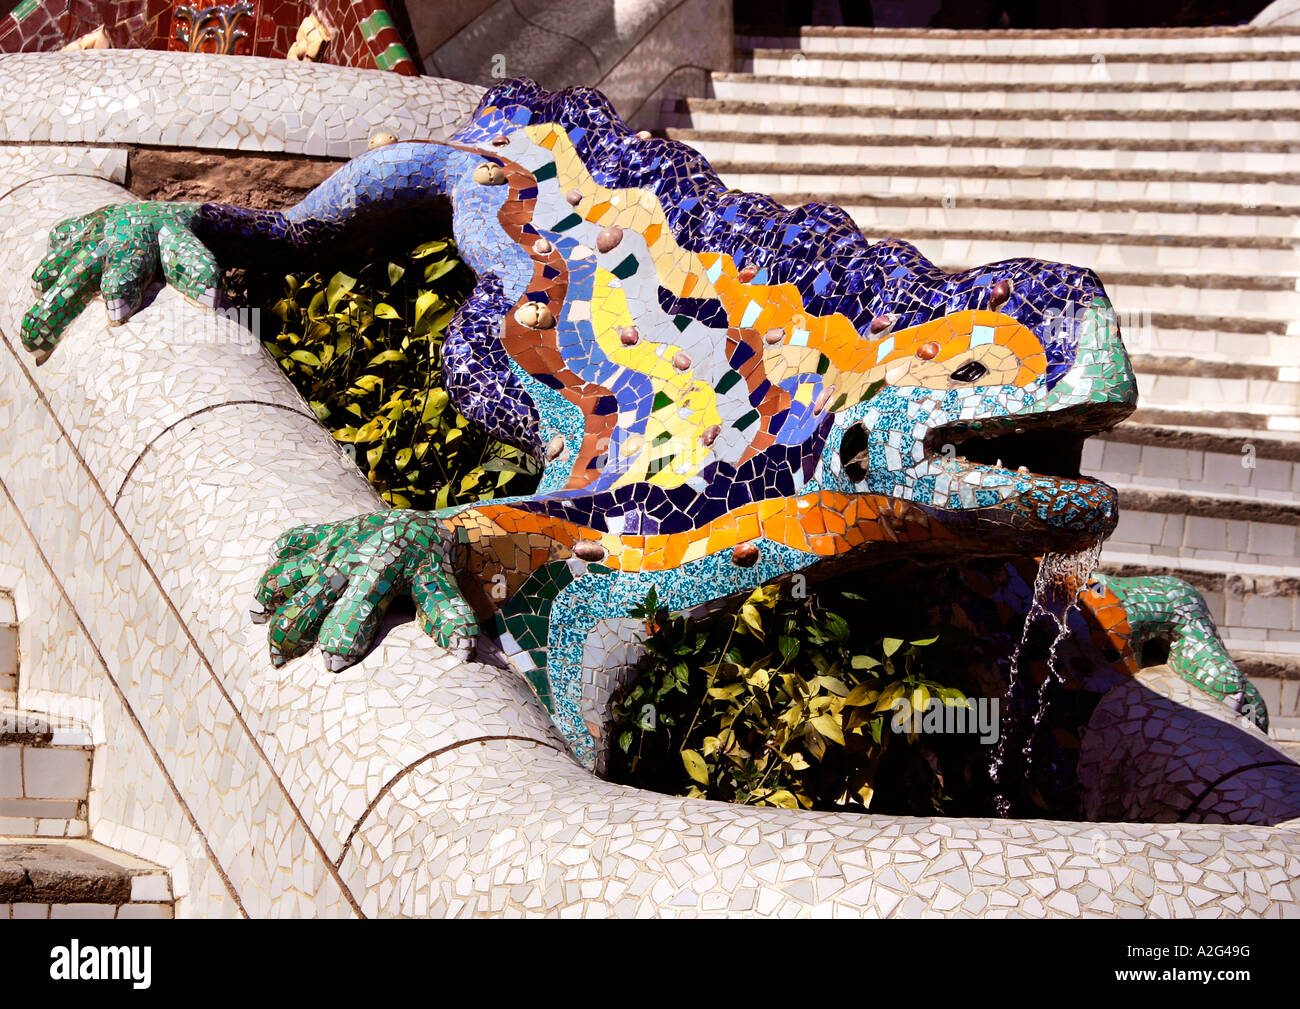 the much-photographed mosaic lizard in Park Guell, Barcelona, Spain - Stock Image